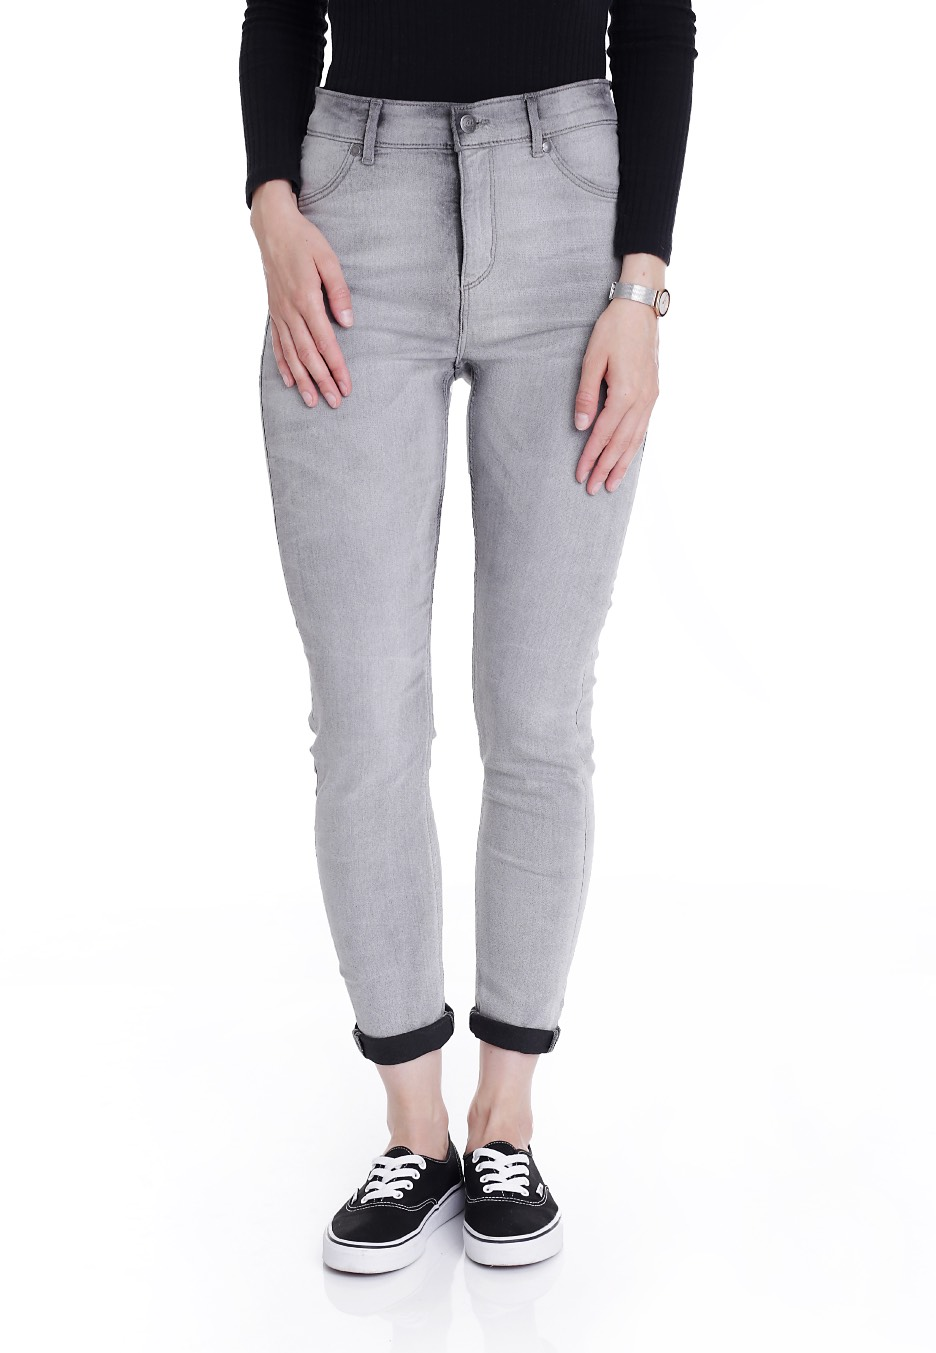 Buy low price, high quality jeggings with worldwide shipping on roeprocjfc.ga